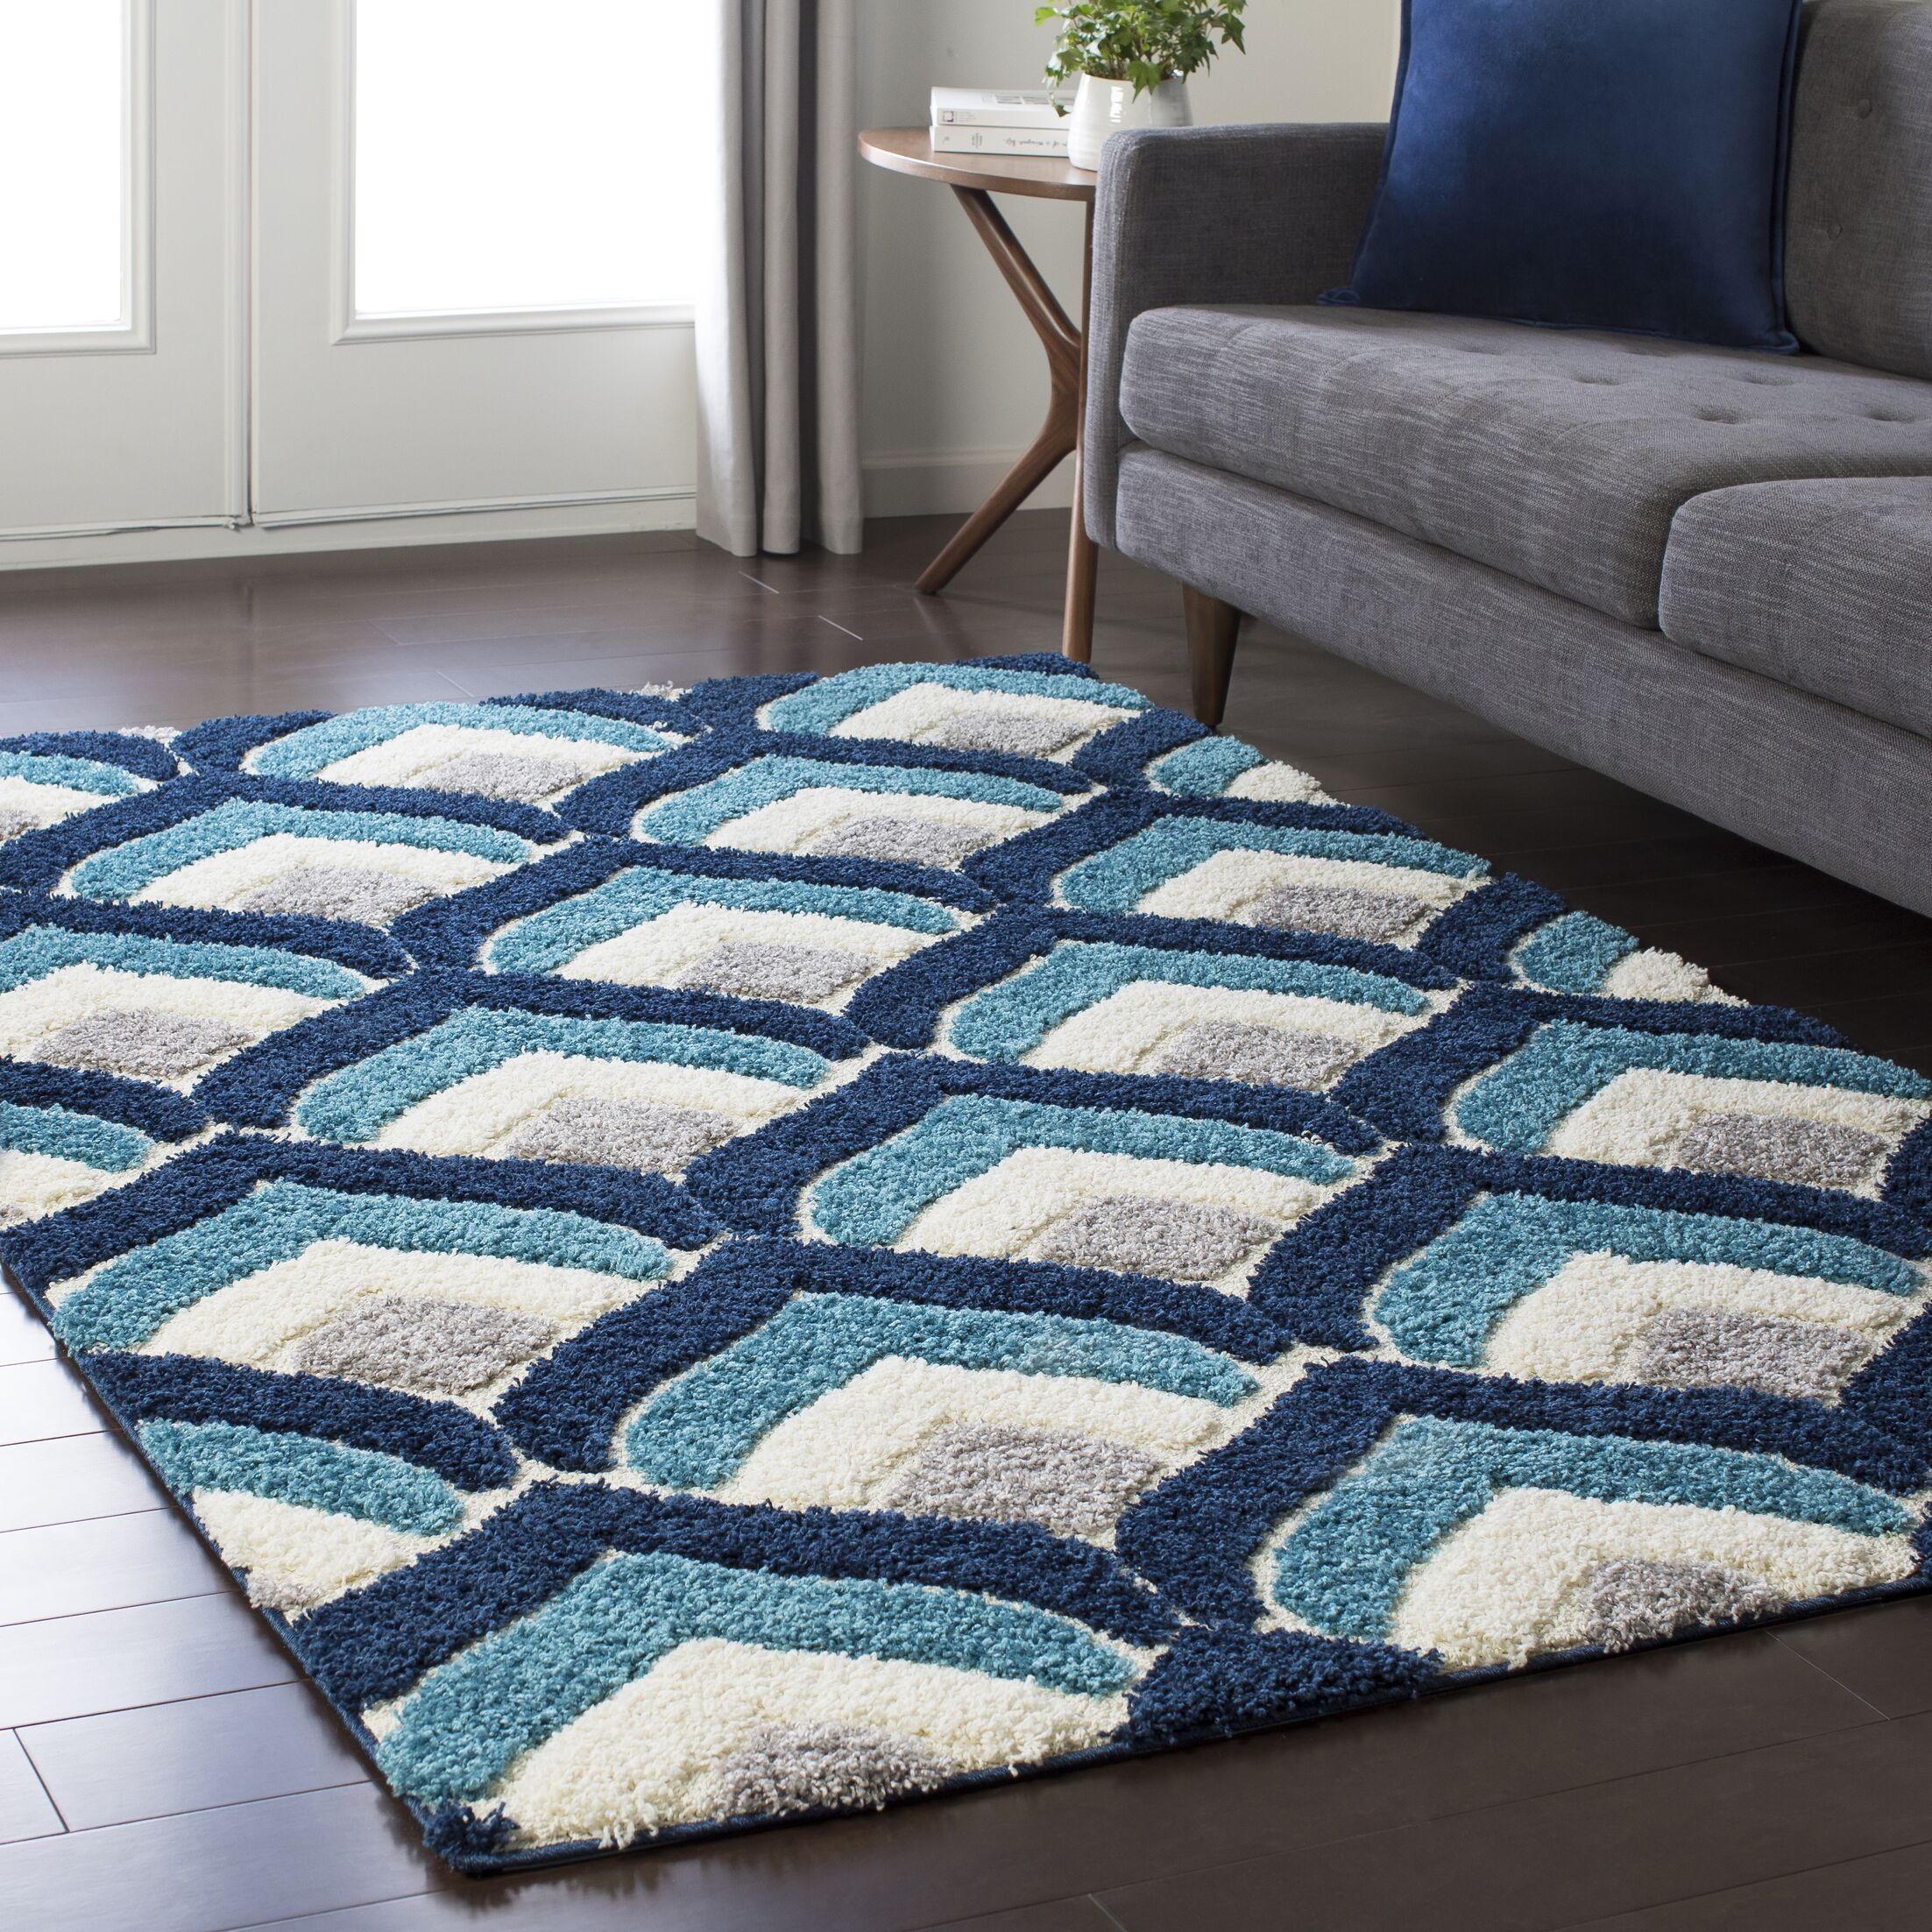 Quincy Soft Patterned Shag Blue/Gray Area Rug Rug Size: Rectangle 7'10